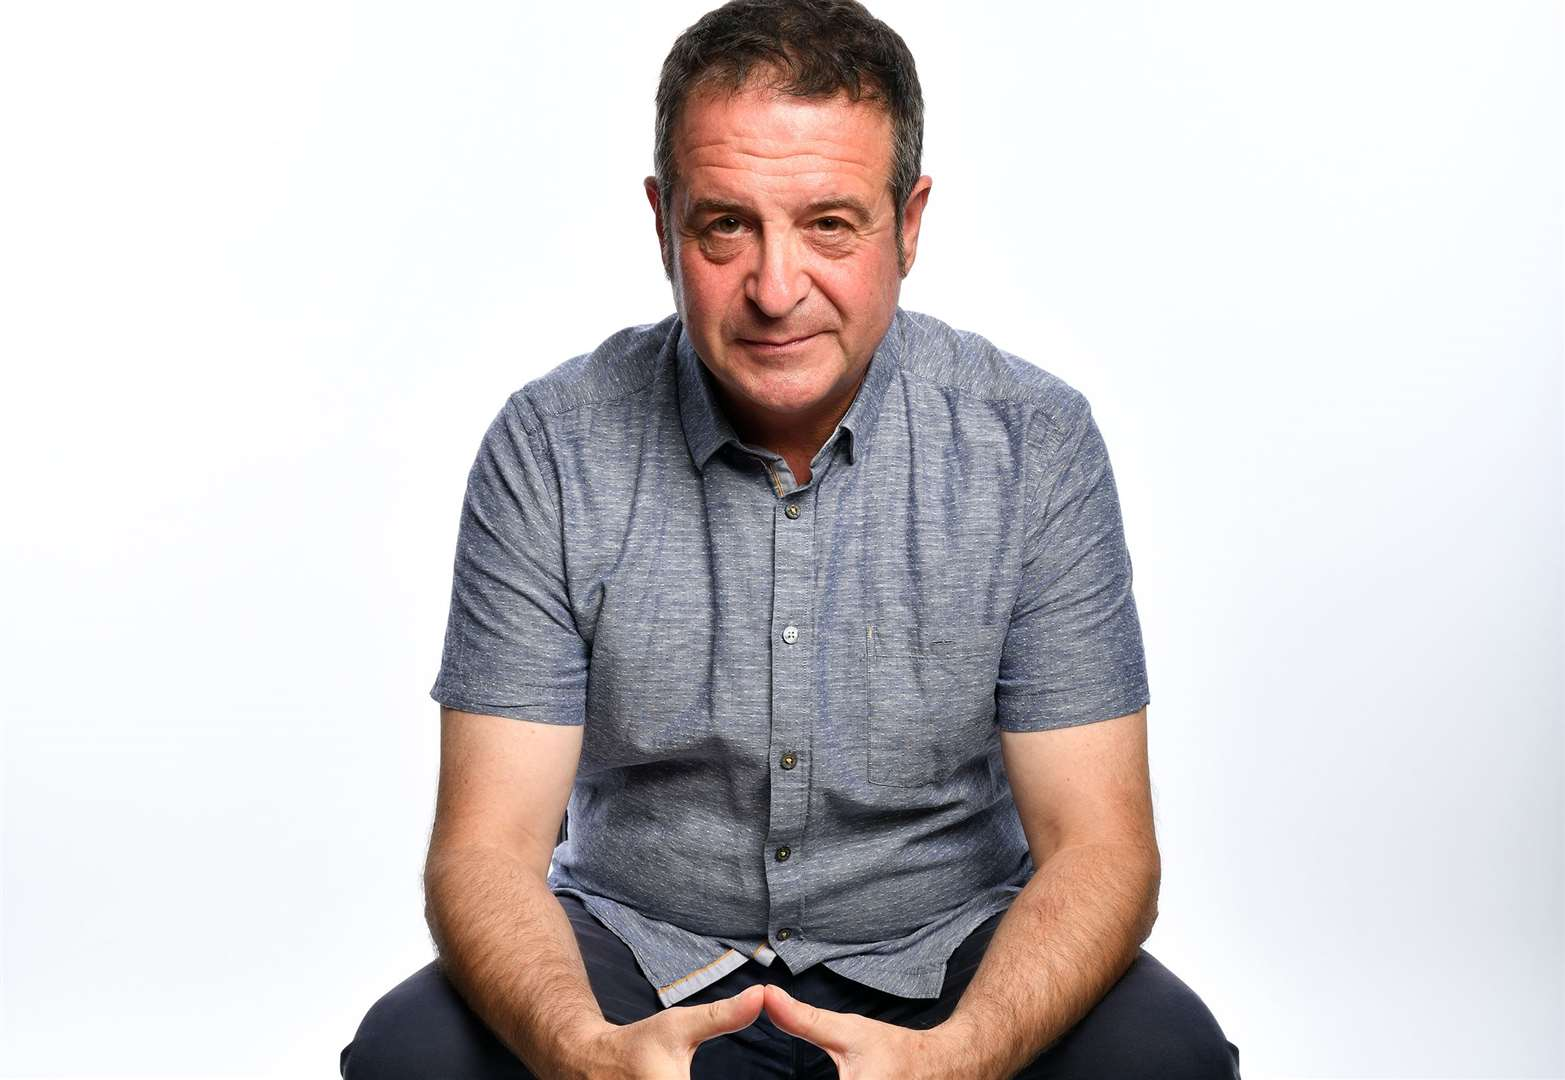 Mark Thomas interview: We need a new national anthem... something about being good neighbours